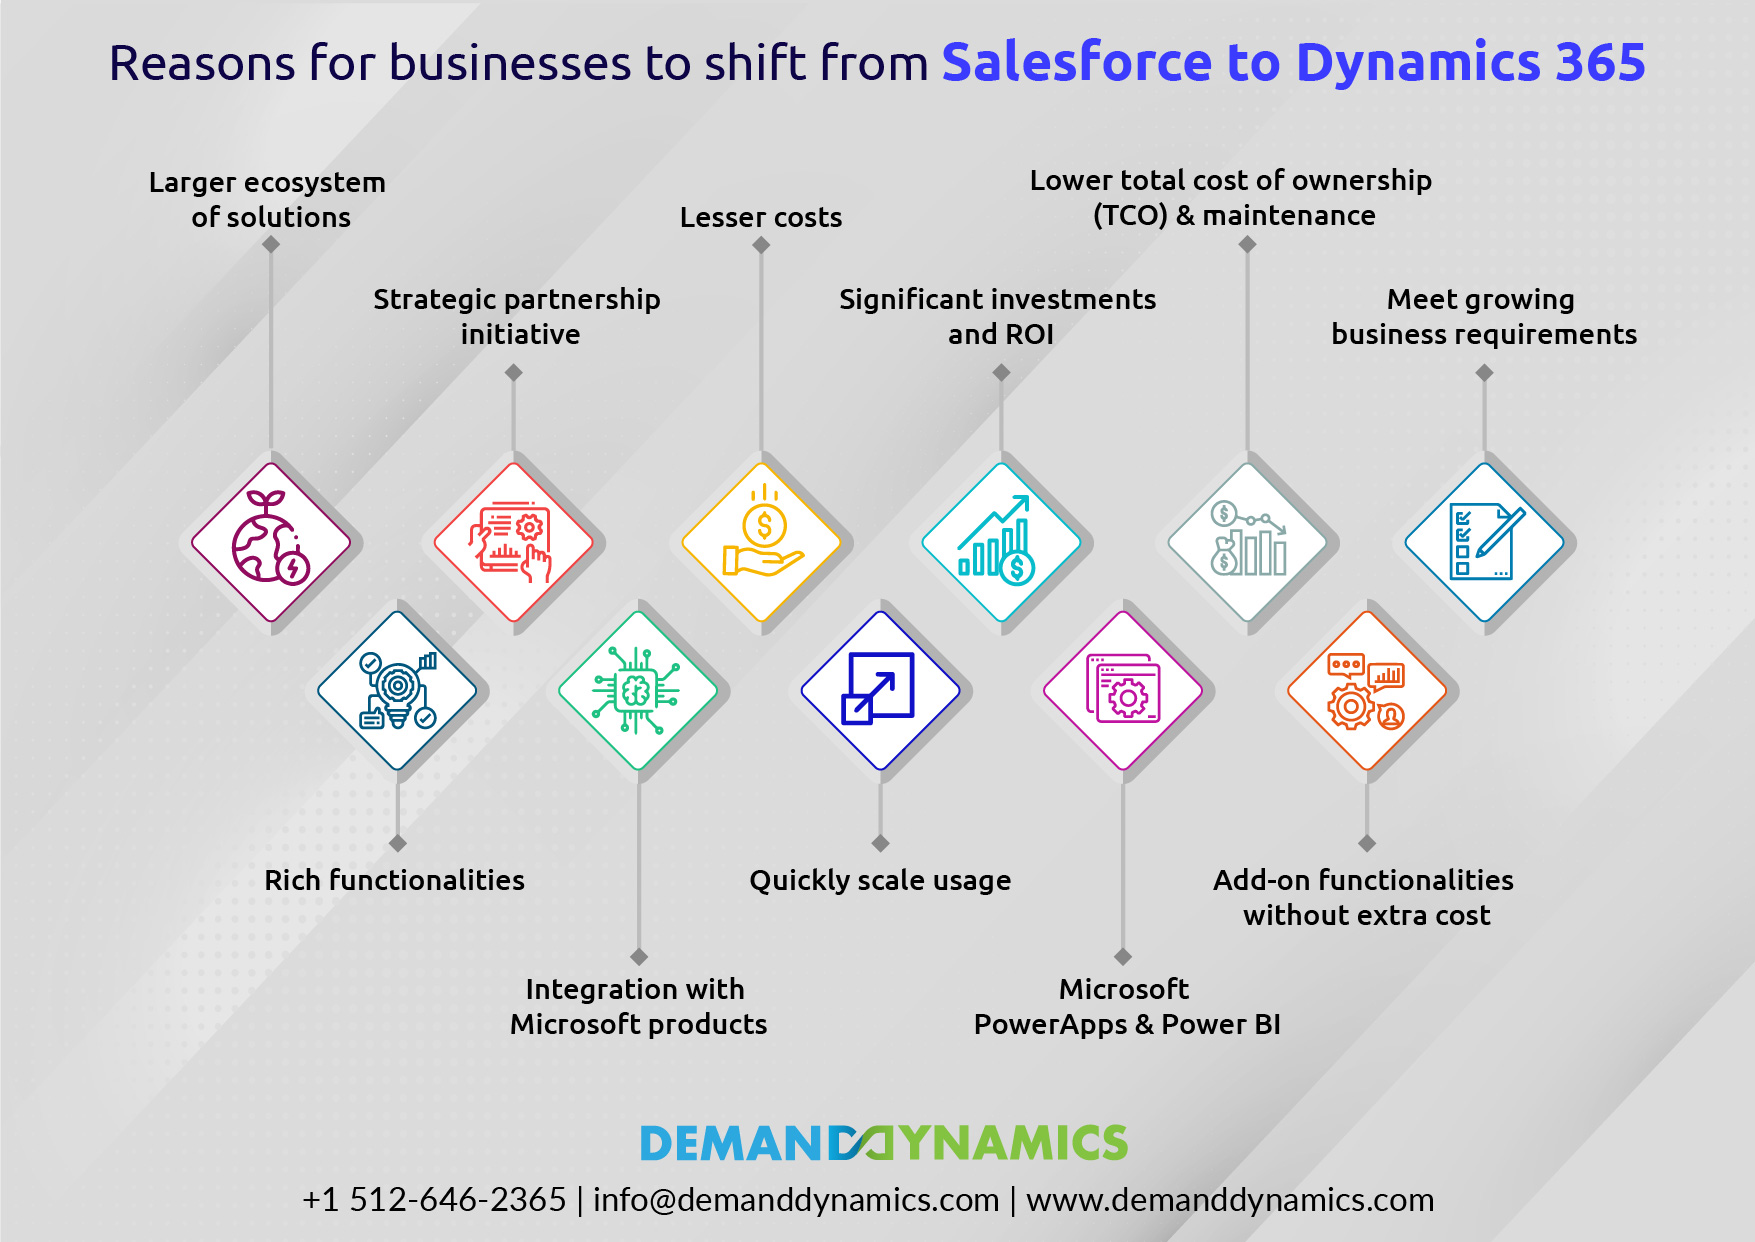 Migrate from Salesforce to Dynamics 365